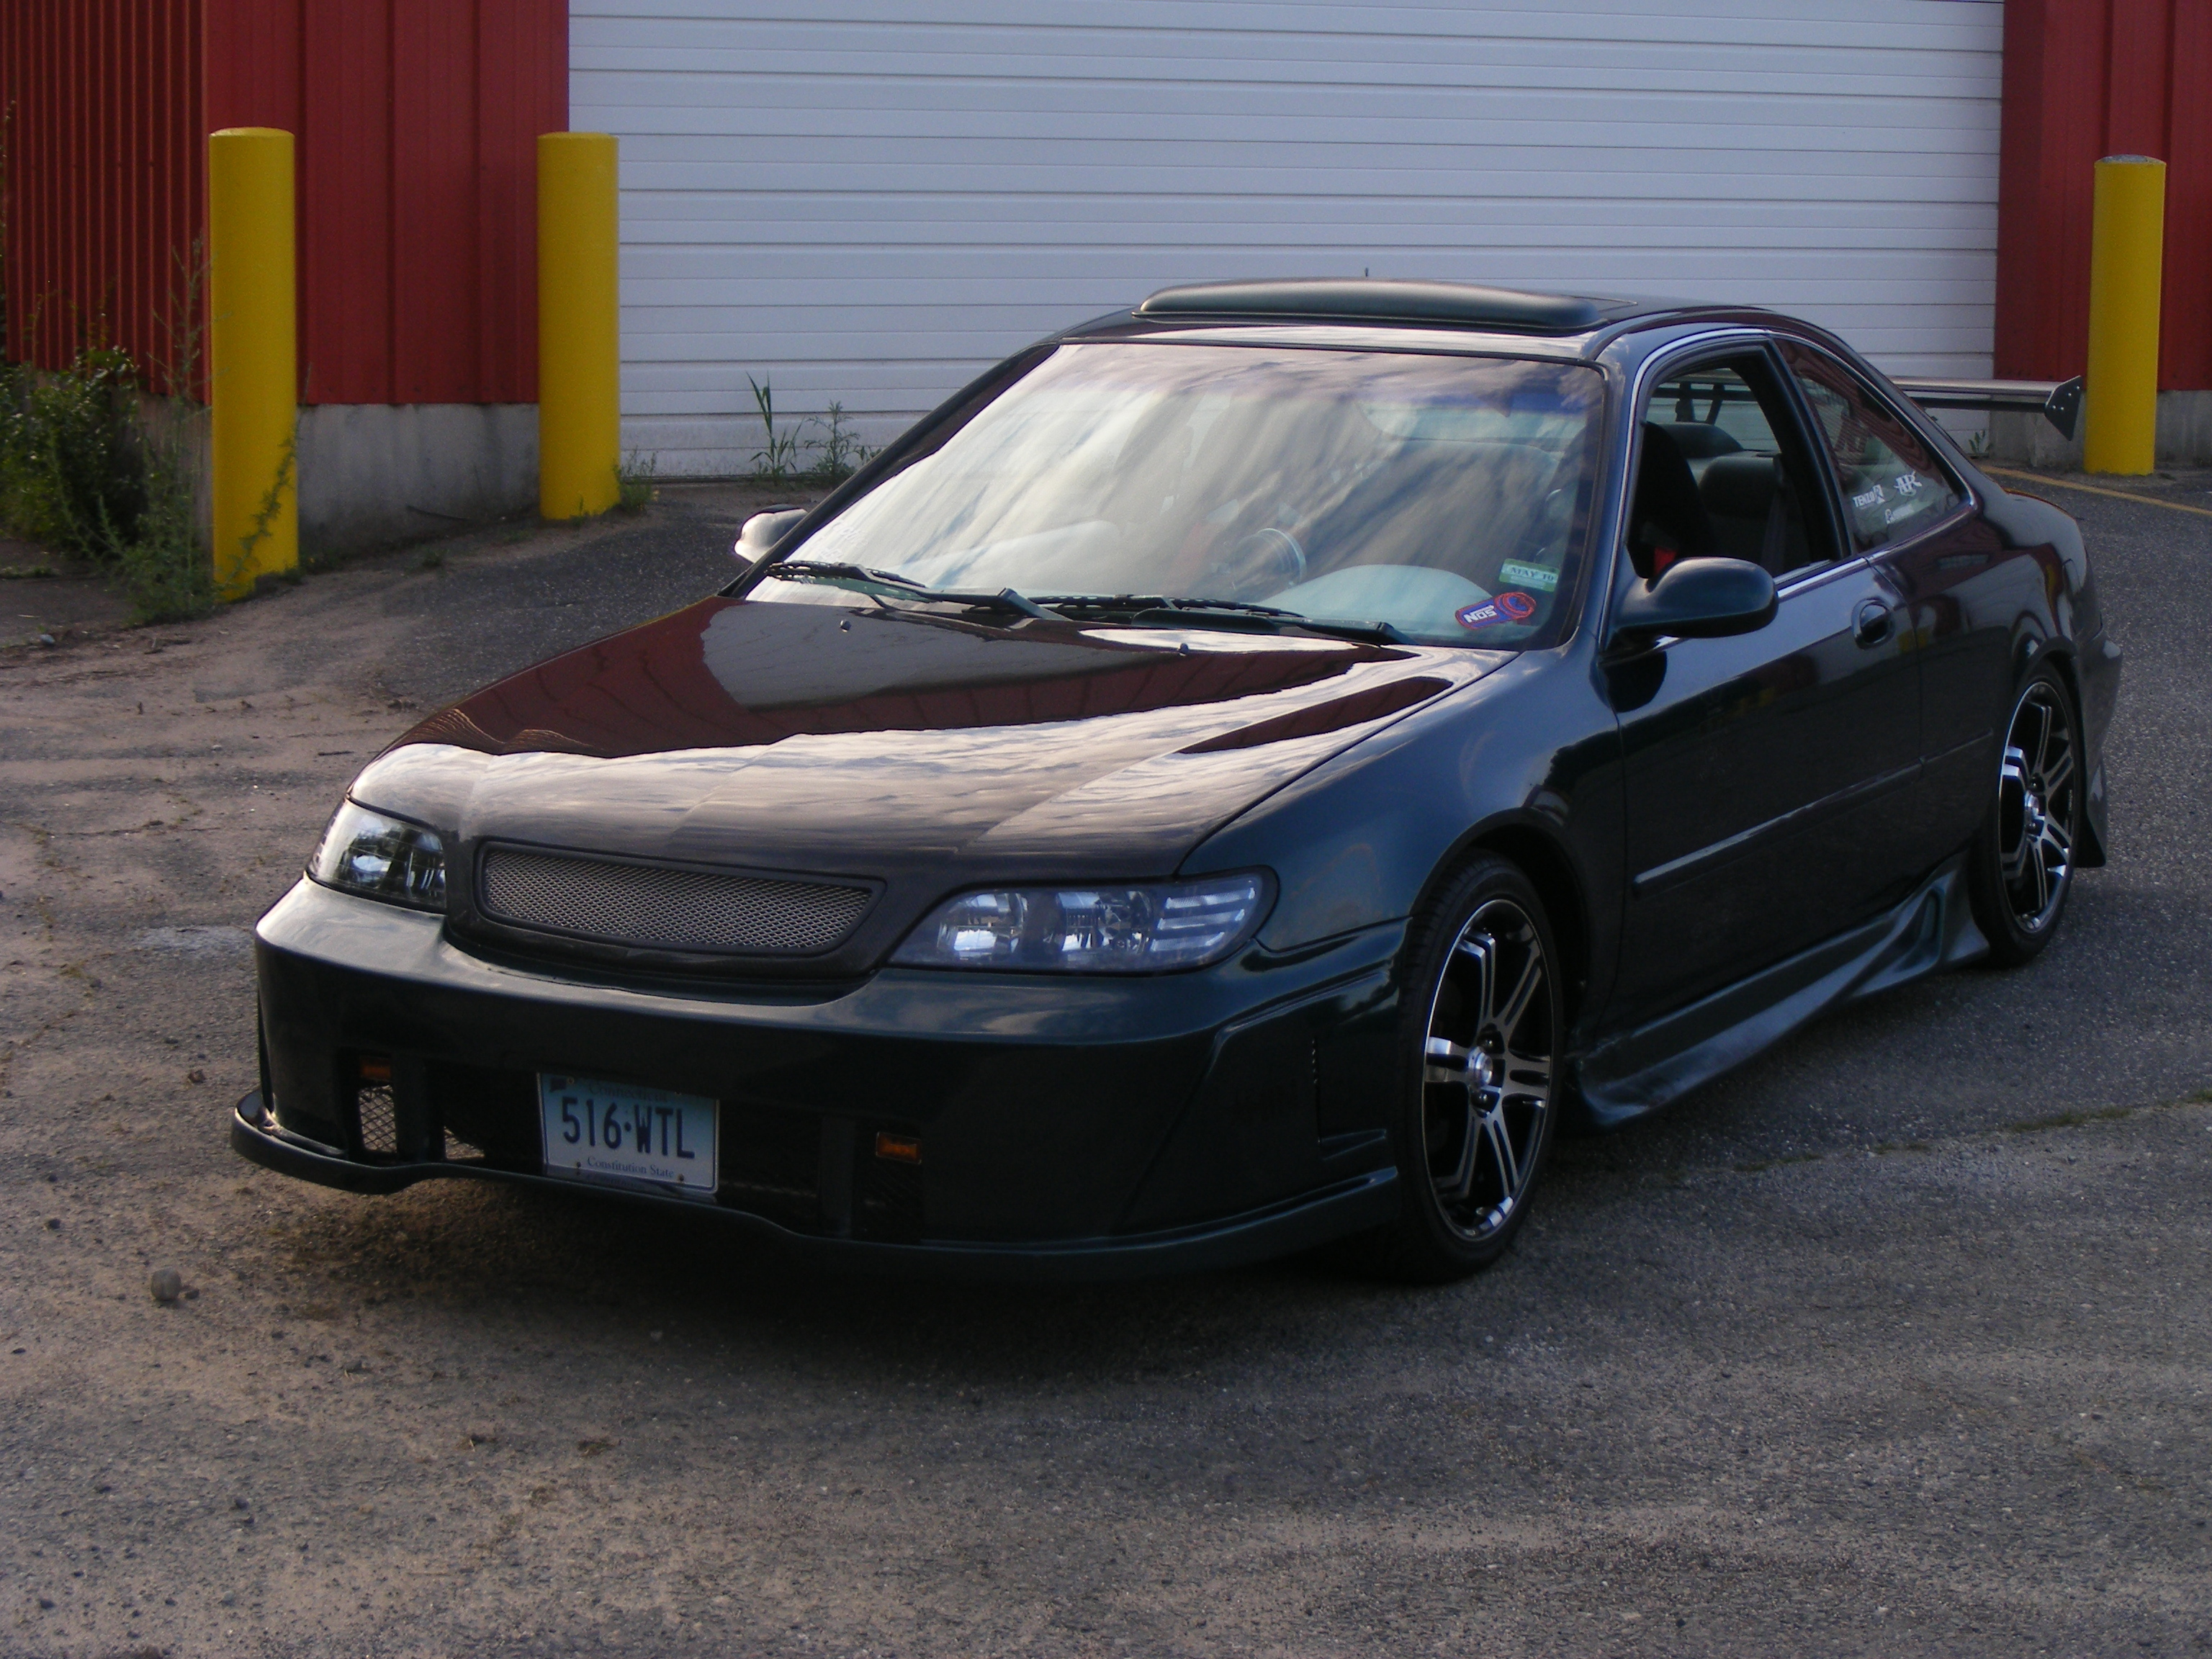 hight resolution of customclrider s 1997 acura cl